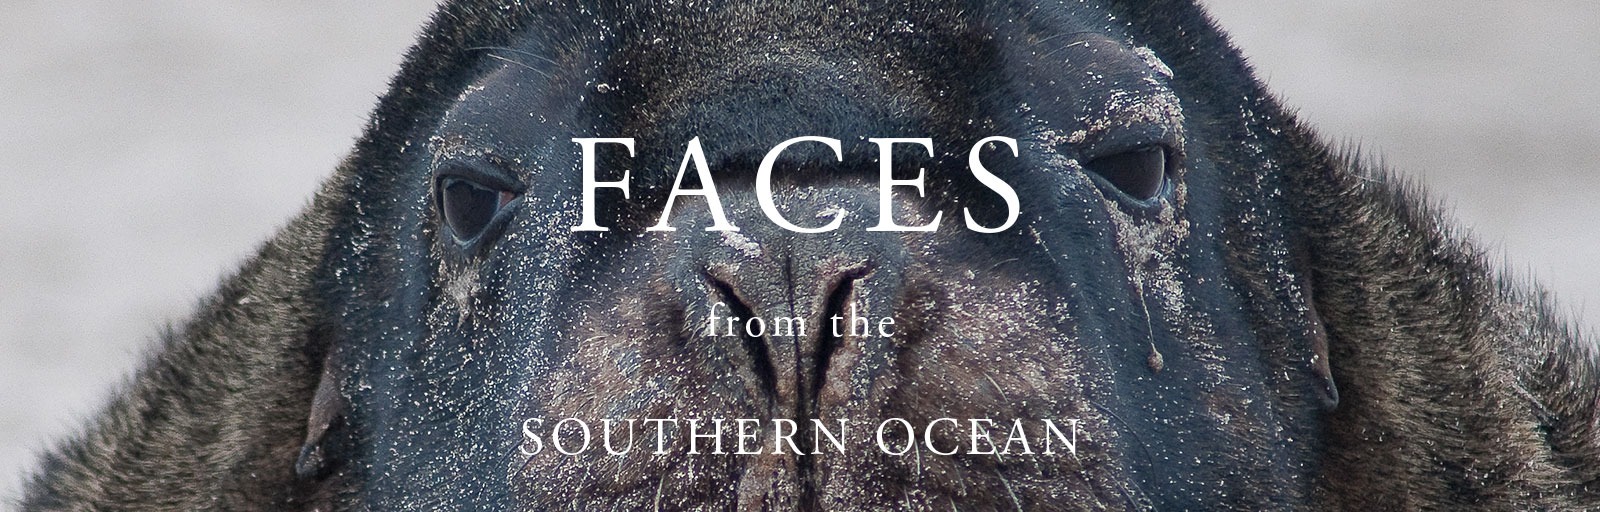 facesouthernocean-webslider-05082018